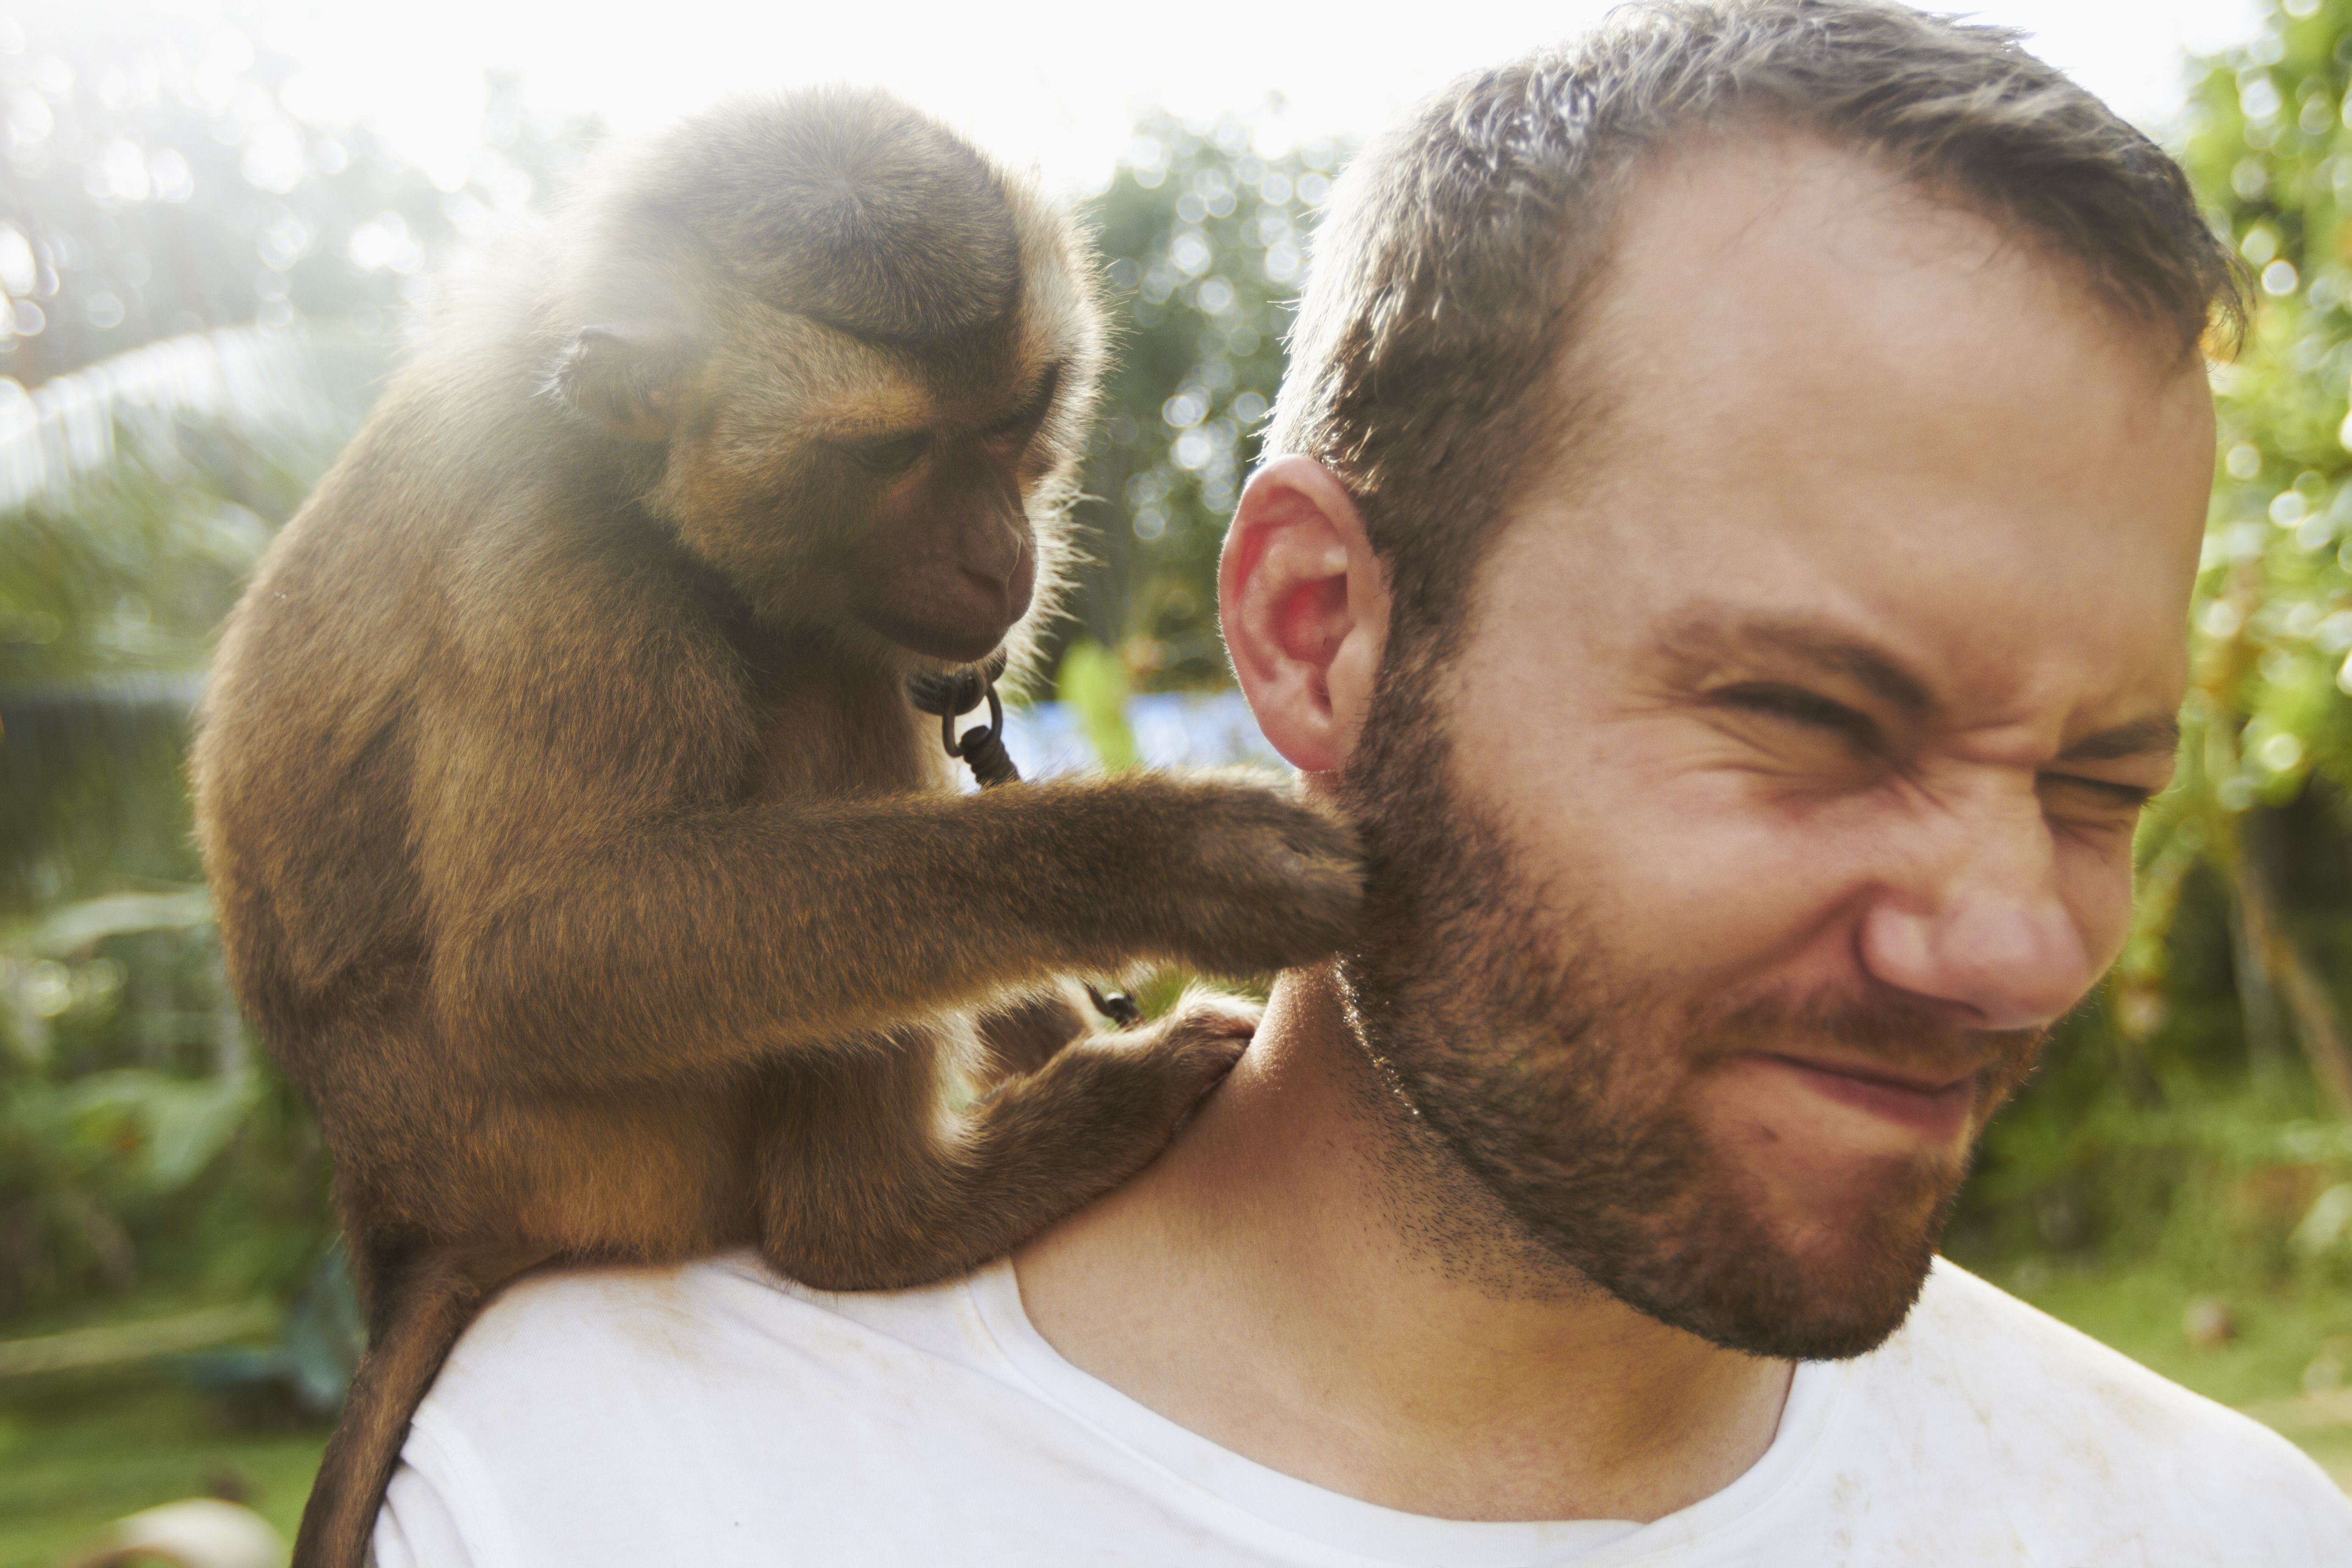 Farang tourist in Thailand with a monkey on his shoulder